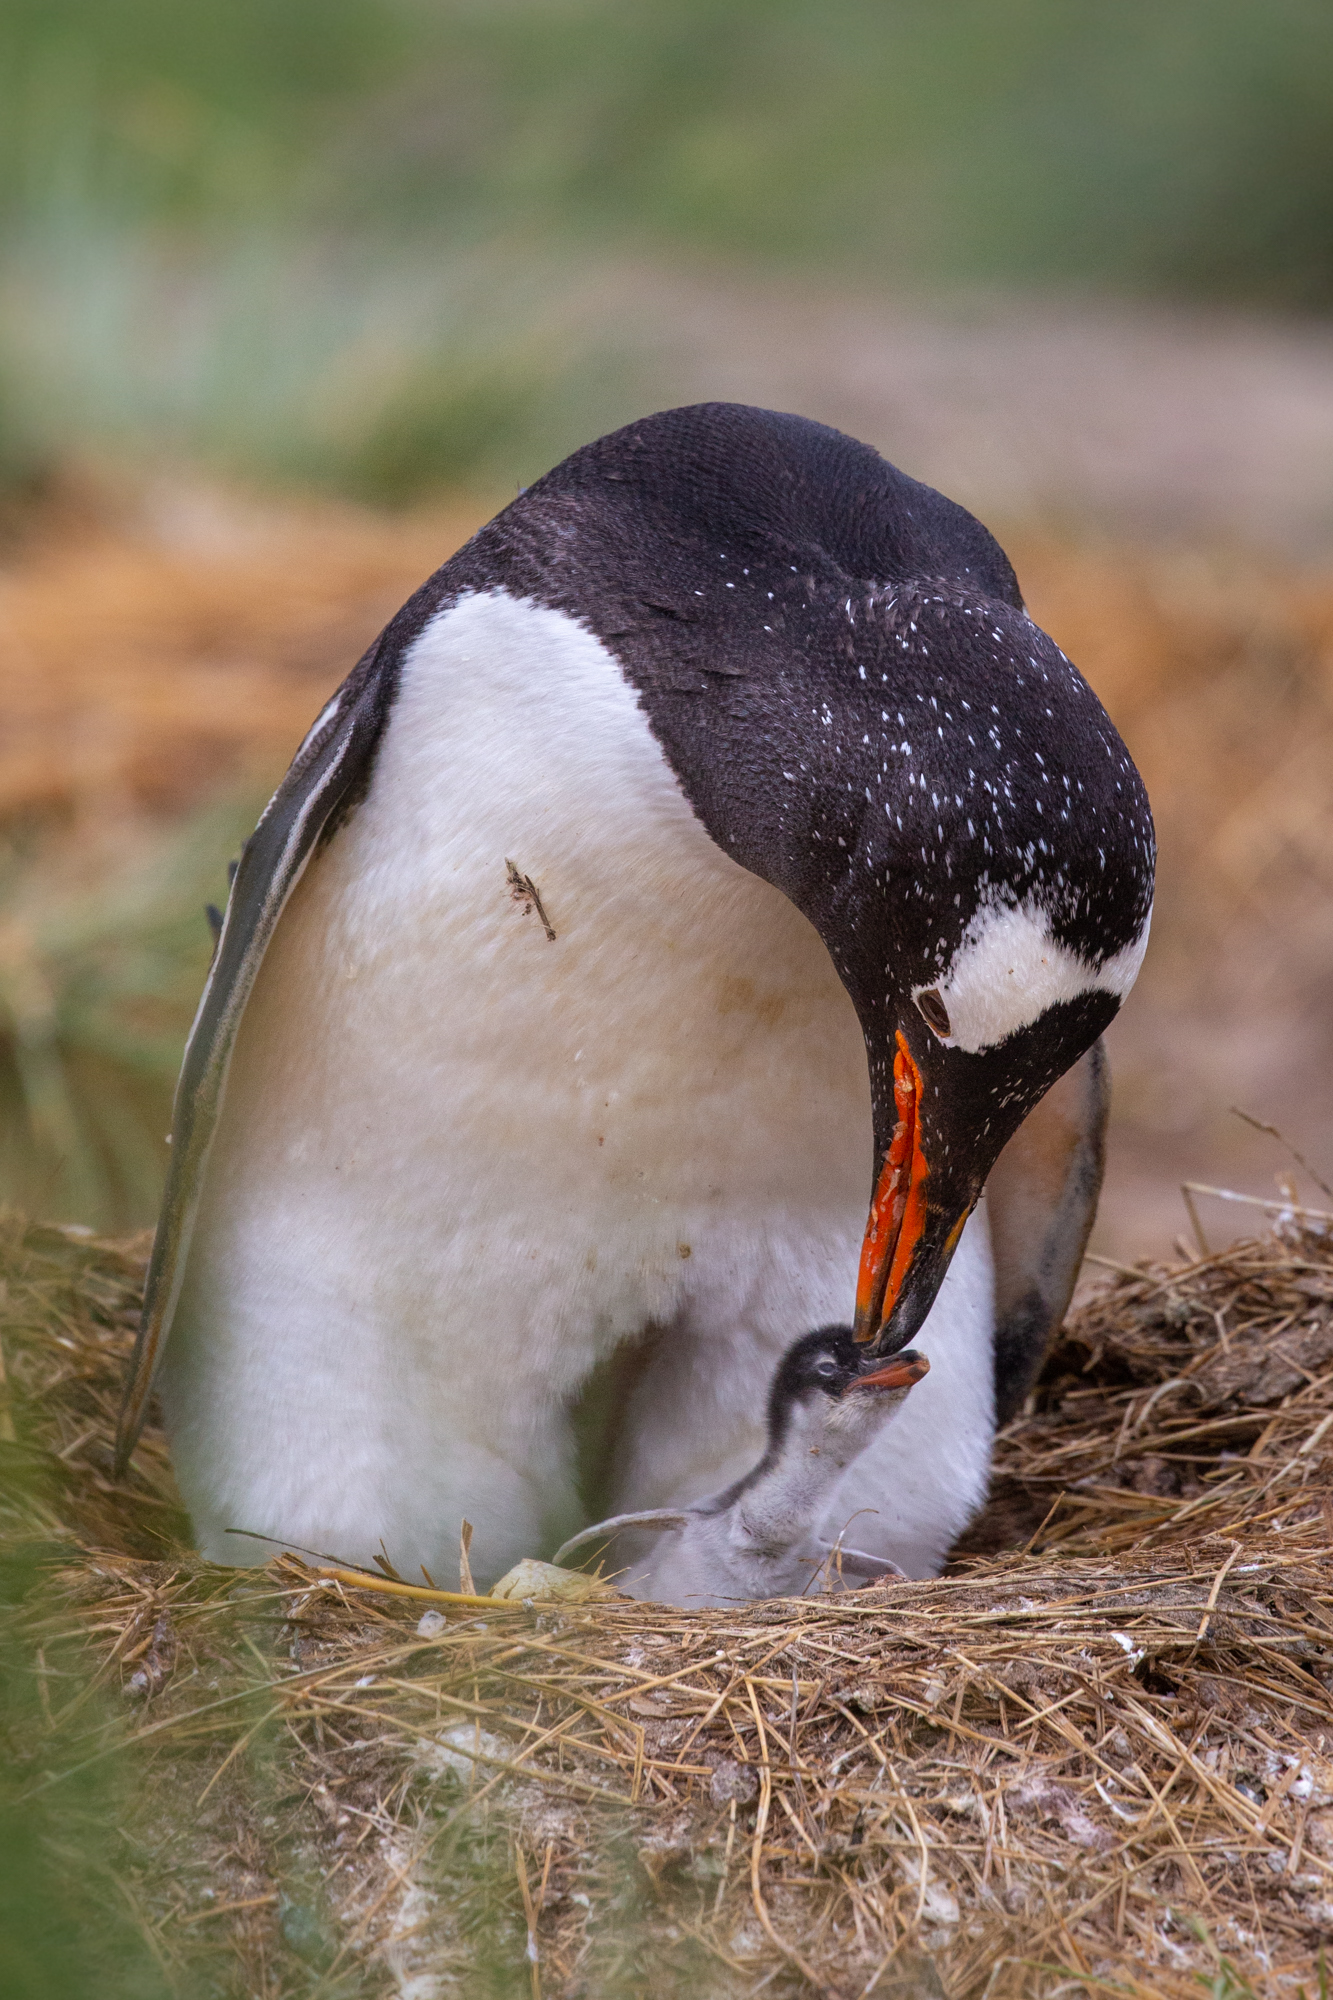 A mother Gentoo penguin shares an affectionate moment with her newly hatched chick, keeping it close by and out of the dangers of the wild world beyond.  When people came to exploit the seals and whales of South Georgia, they left behind a hidden killer - rats that hitched a ride onboard the ships. On an island primarily inhabited by birds with no mammalian predators and no evolved defense, the introduction of egg and chick hungry rats proved devastating to countless species. Pipits and pintail ducks where the hardest hit species and rats also went after young penguins and penguin eggs, leaving many bird populations on the brink of extinction. Without human intervention, South Georgia's abundance of life may have easily disappeared.  The miraculous and hopeful conservation success story of how South Georgia was saved from this infestation will be continued in the next post! Keep posted for the image tomorrow.